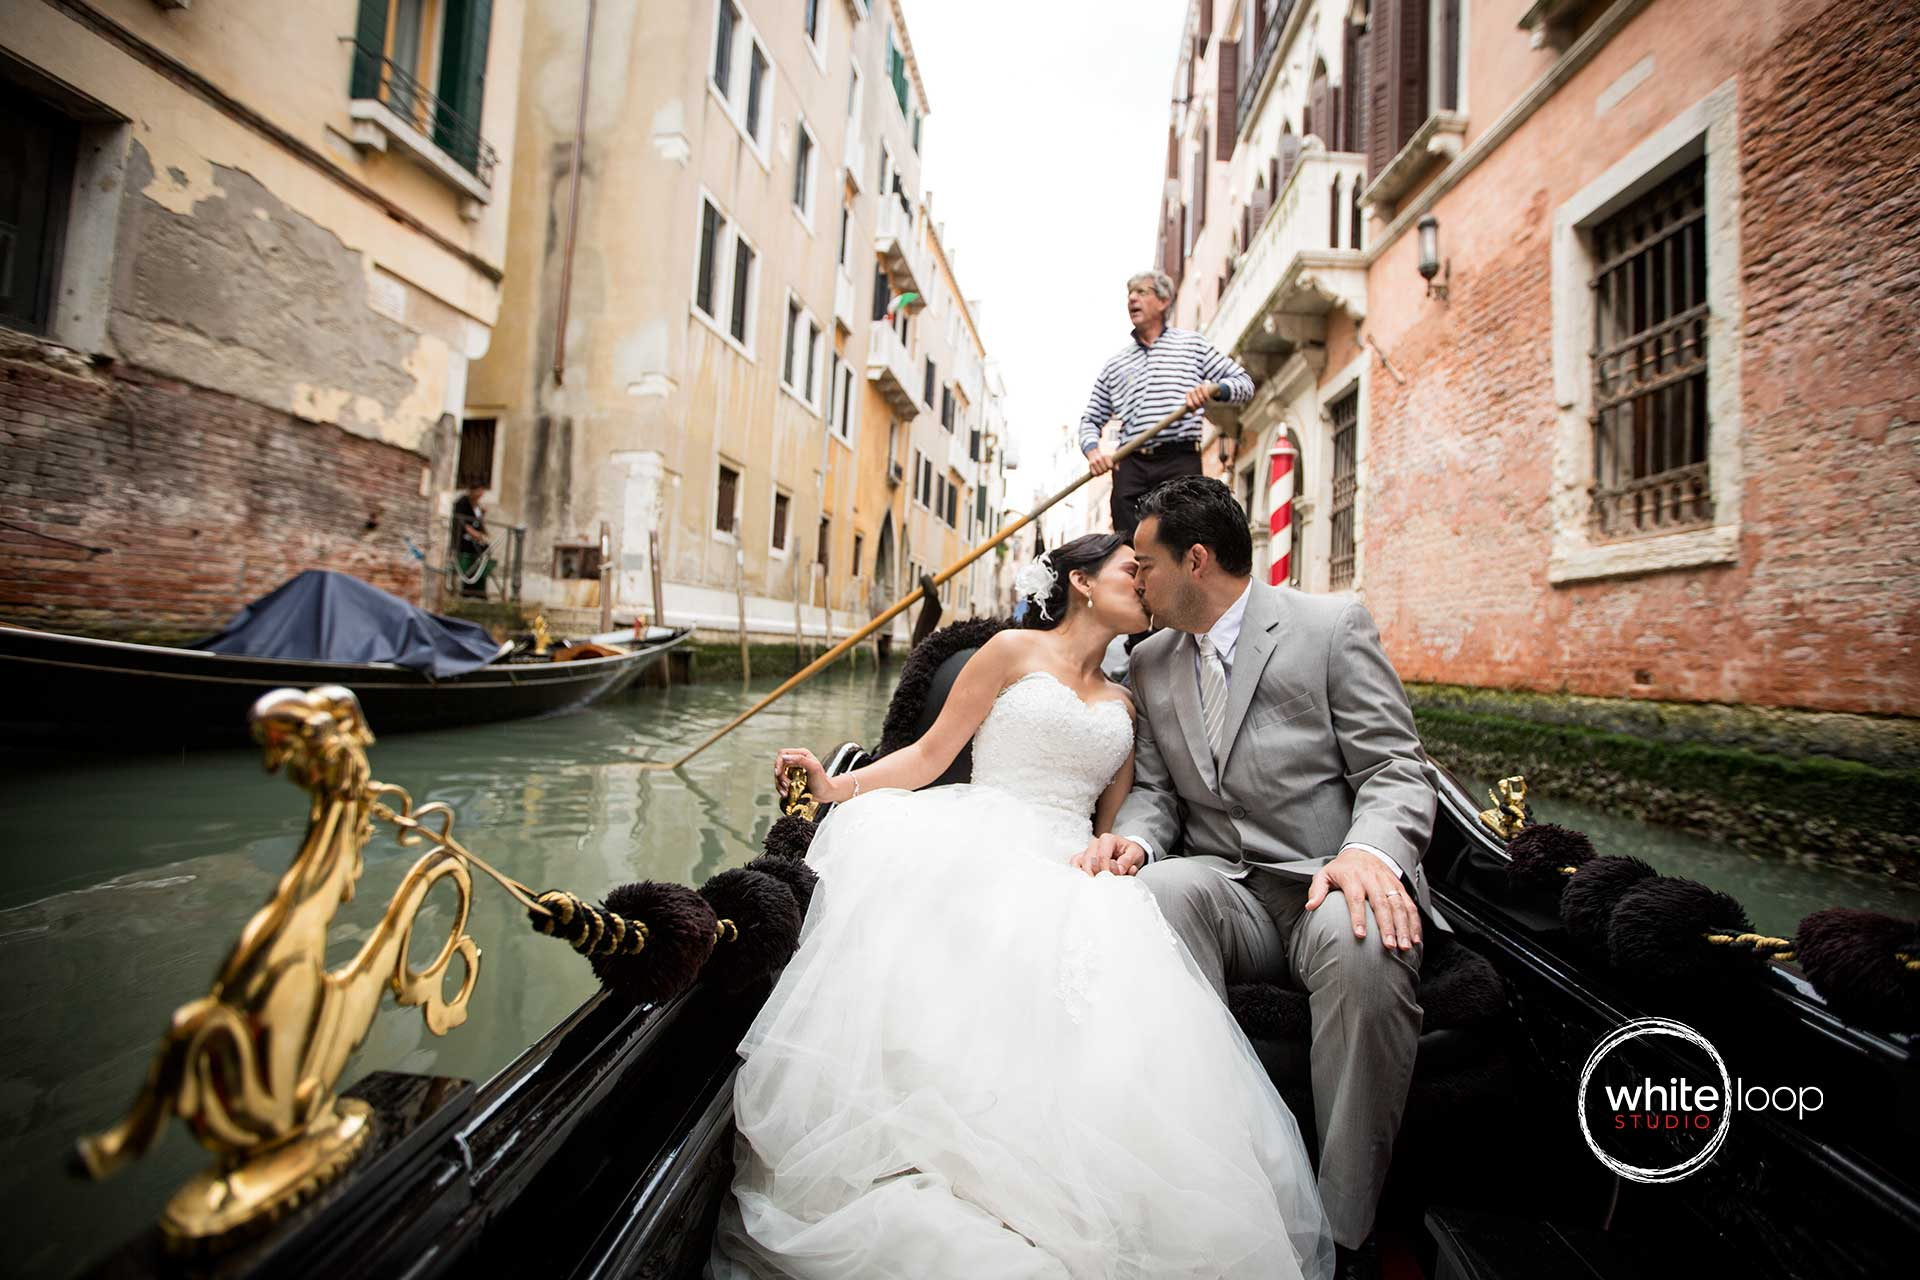 The bride and groom are kissing in a traditional Venetian gondola, meanwhile they are crossing the beautiful city of Venice in Italy.